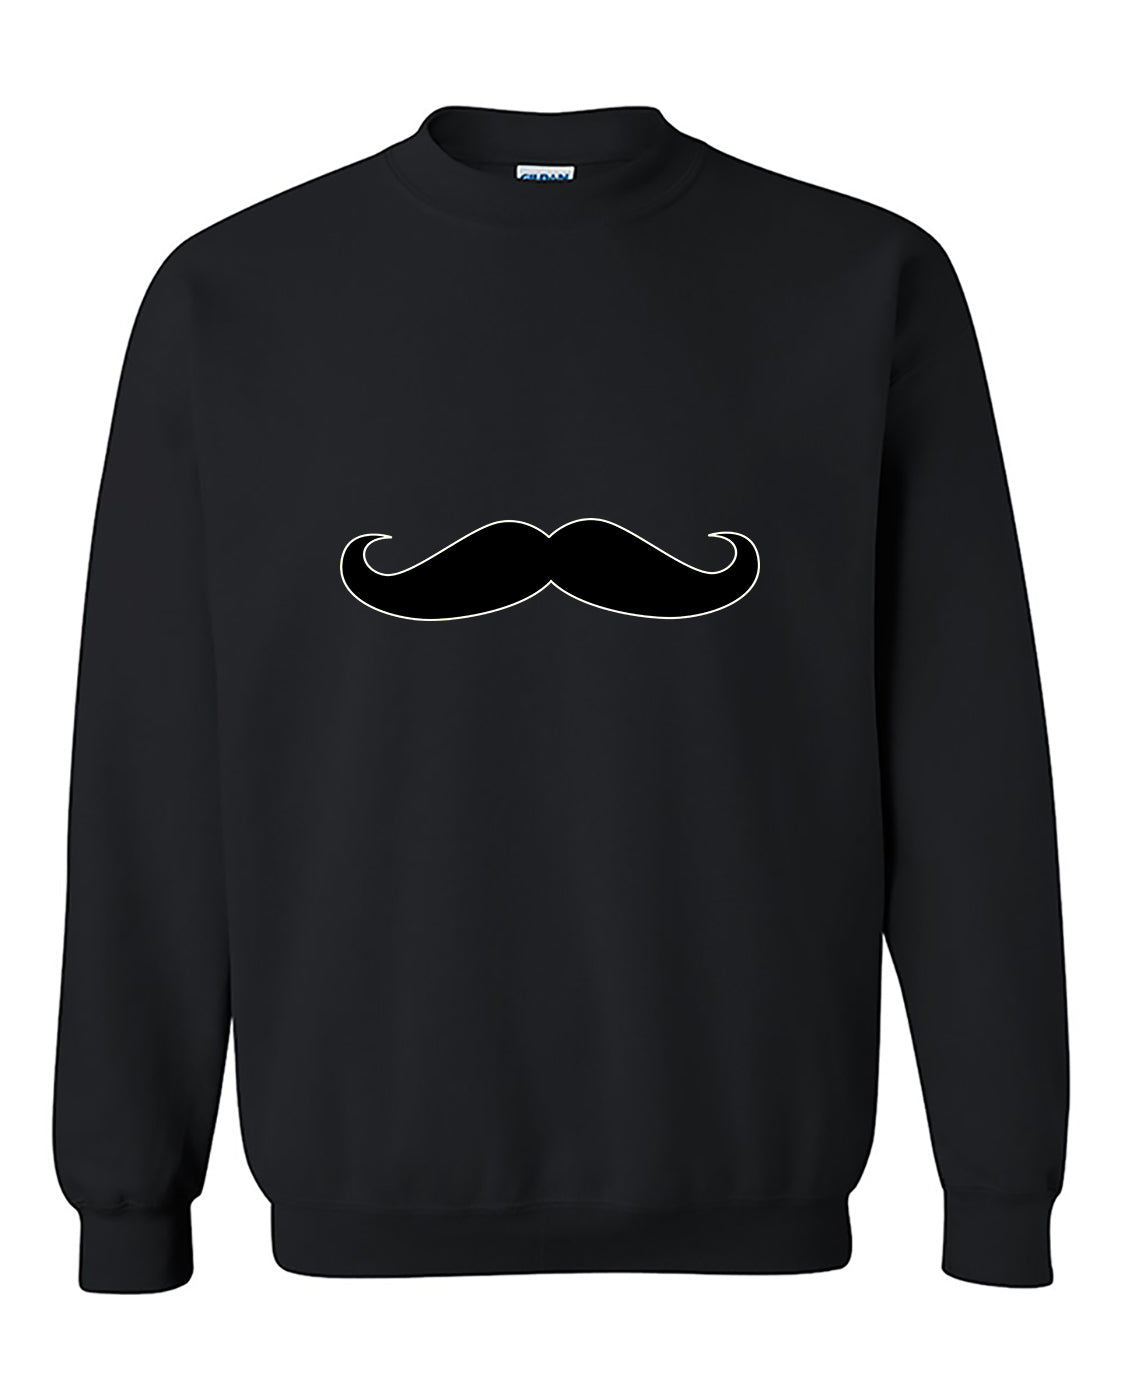 Mustache Fashion Crewneck Sweater